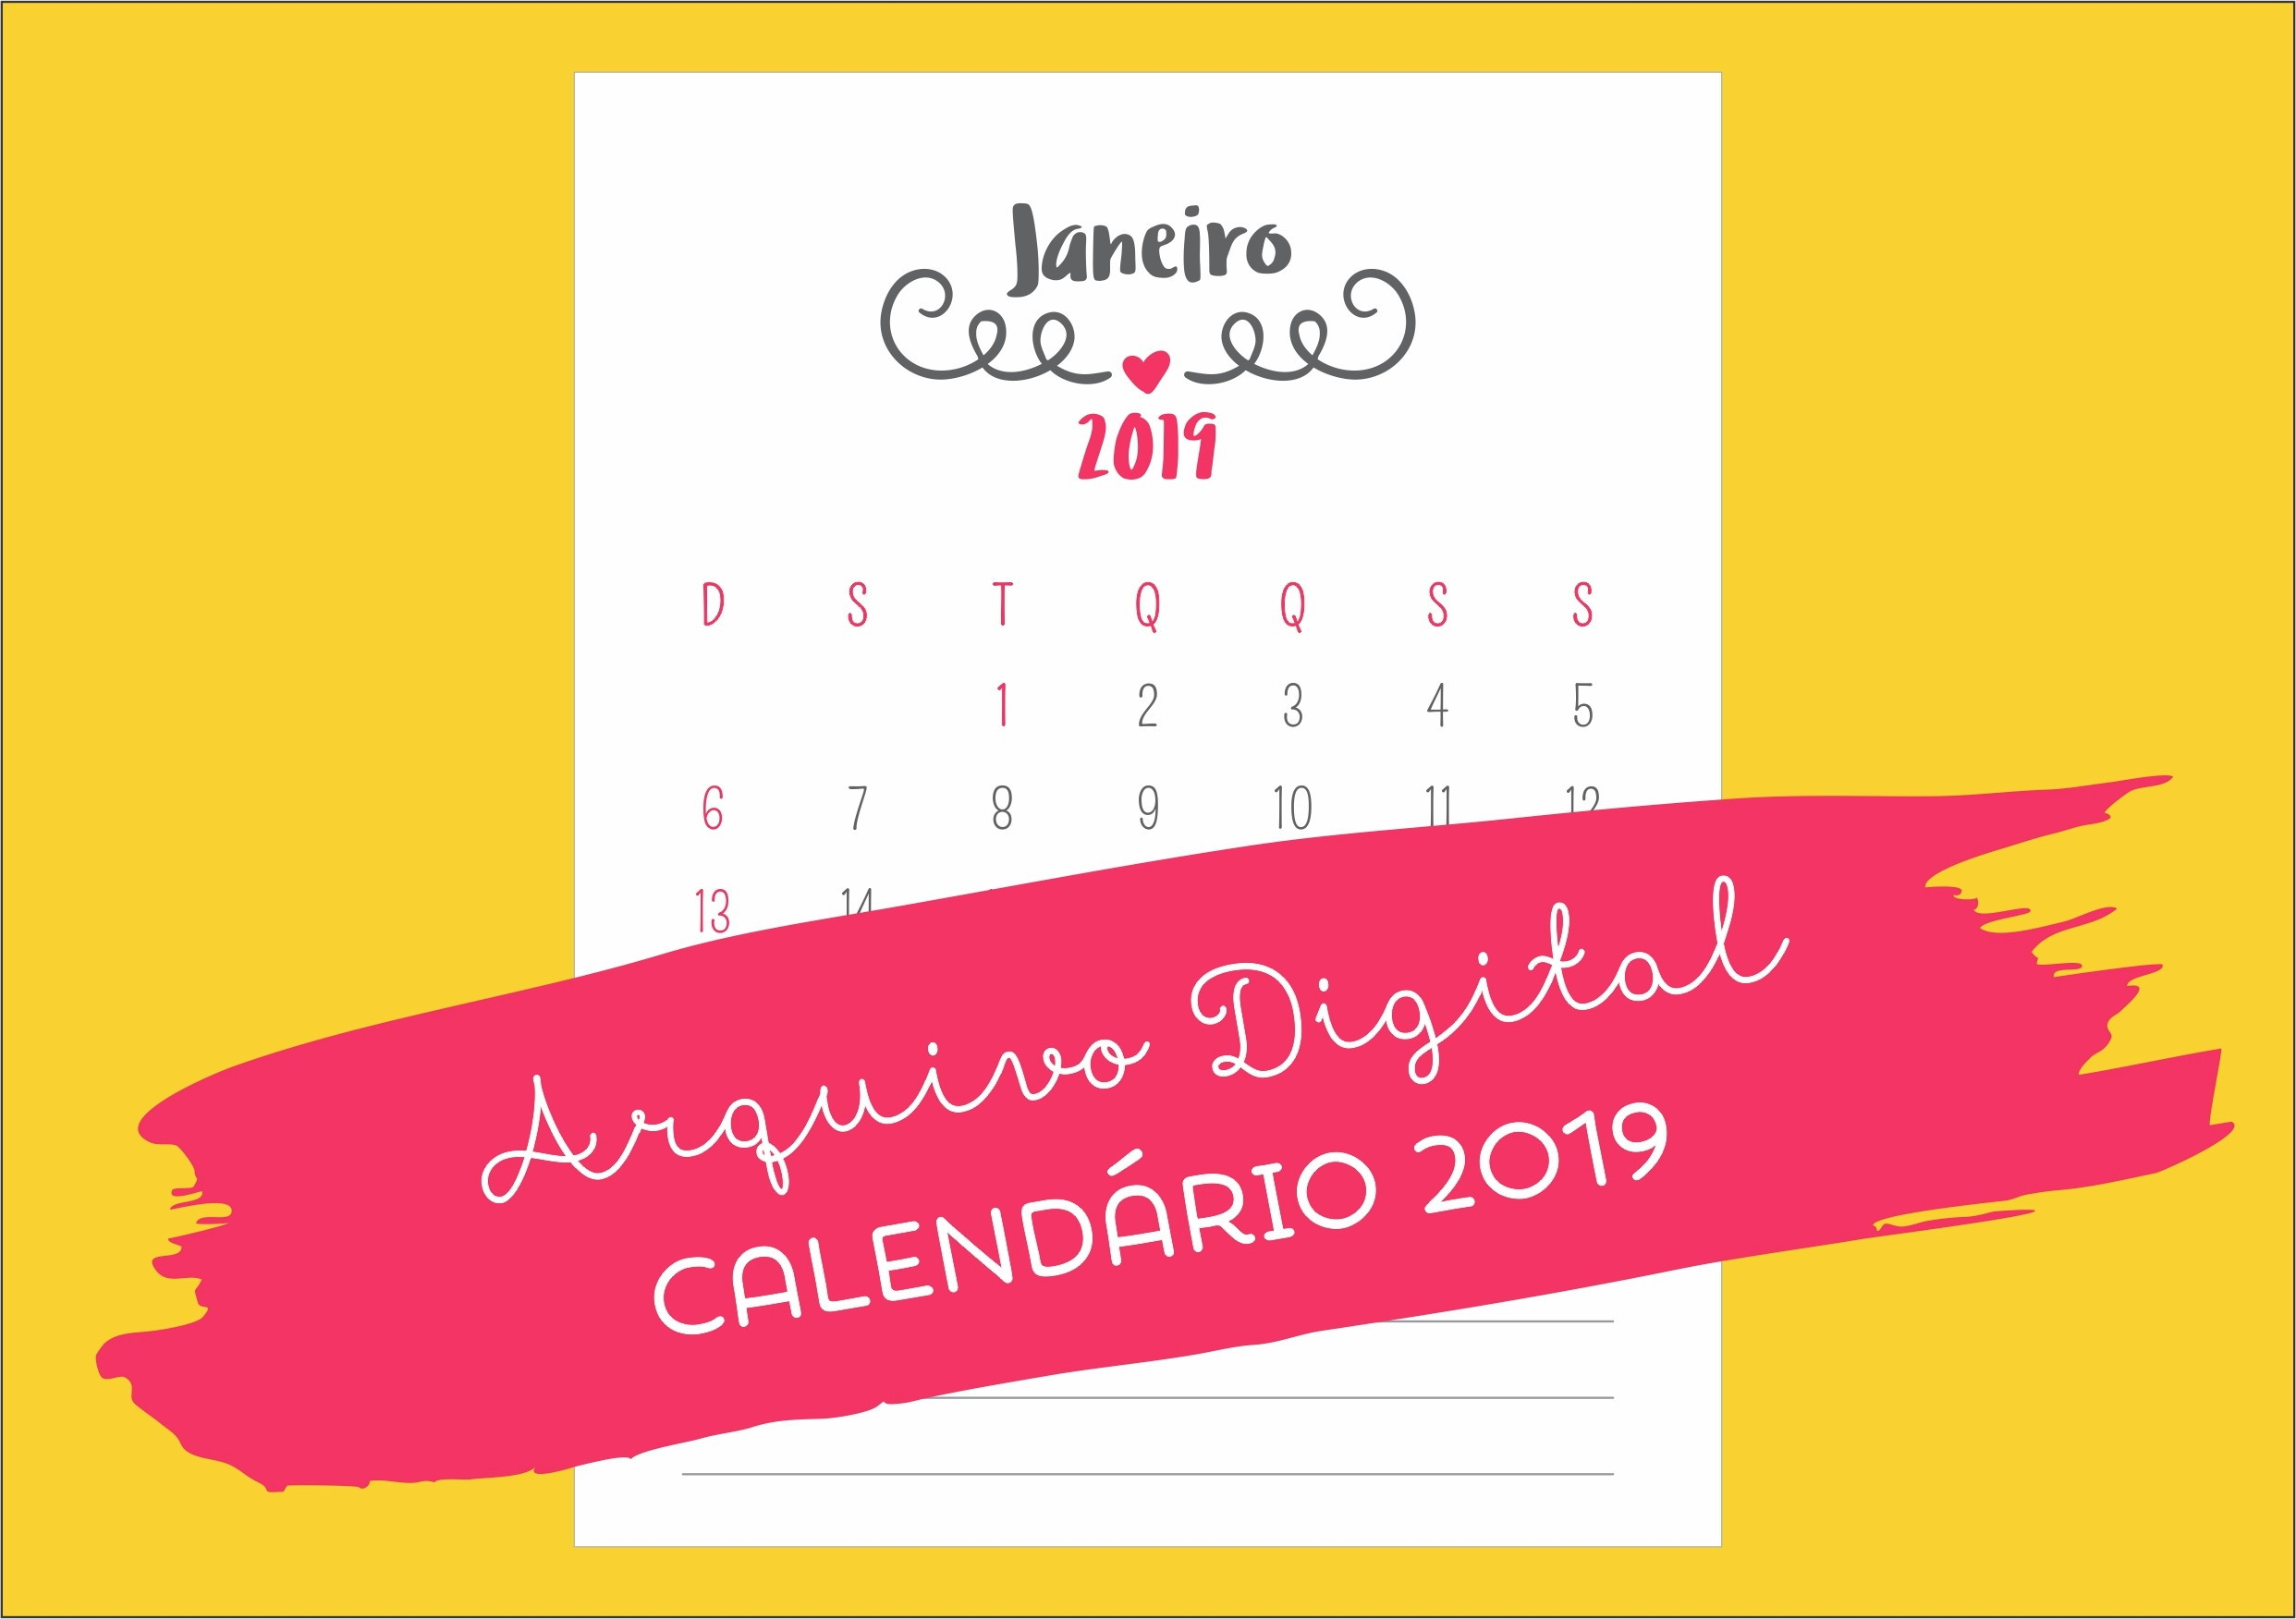 arquivo digital calendario 2019